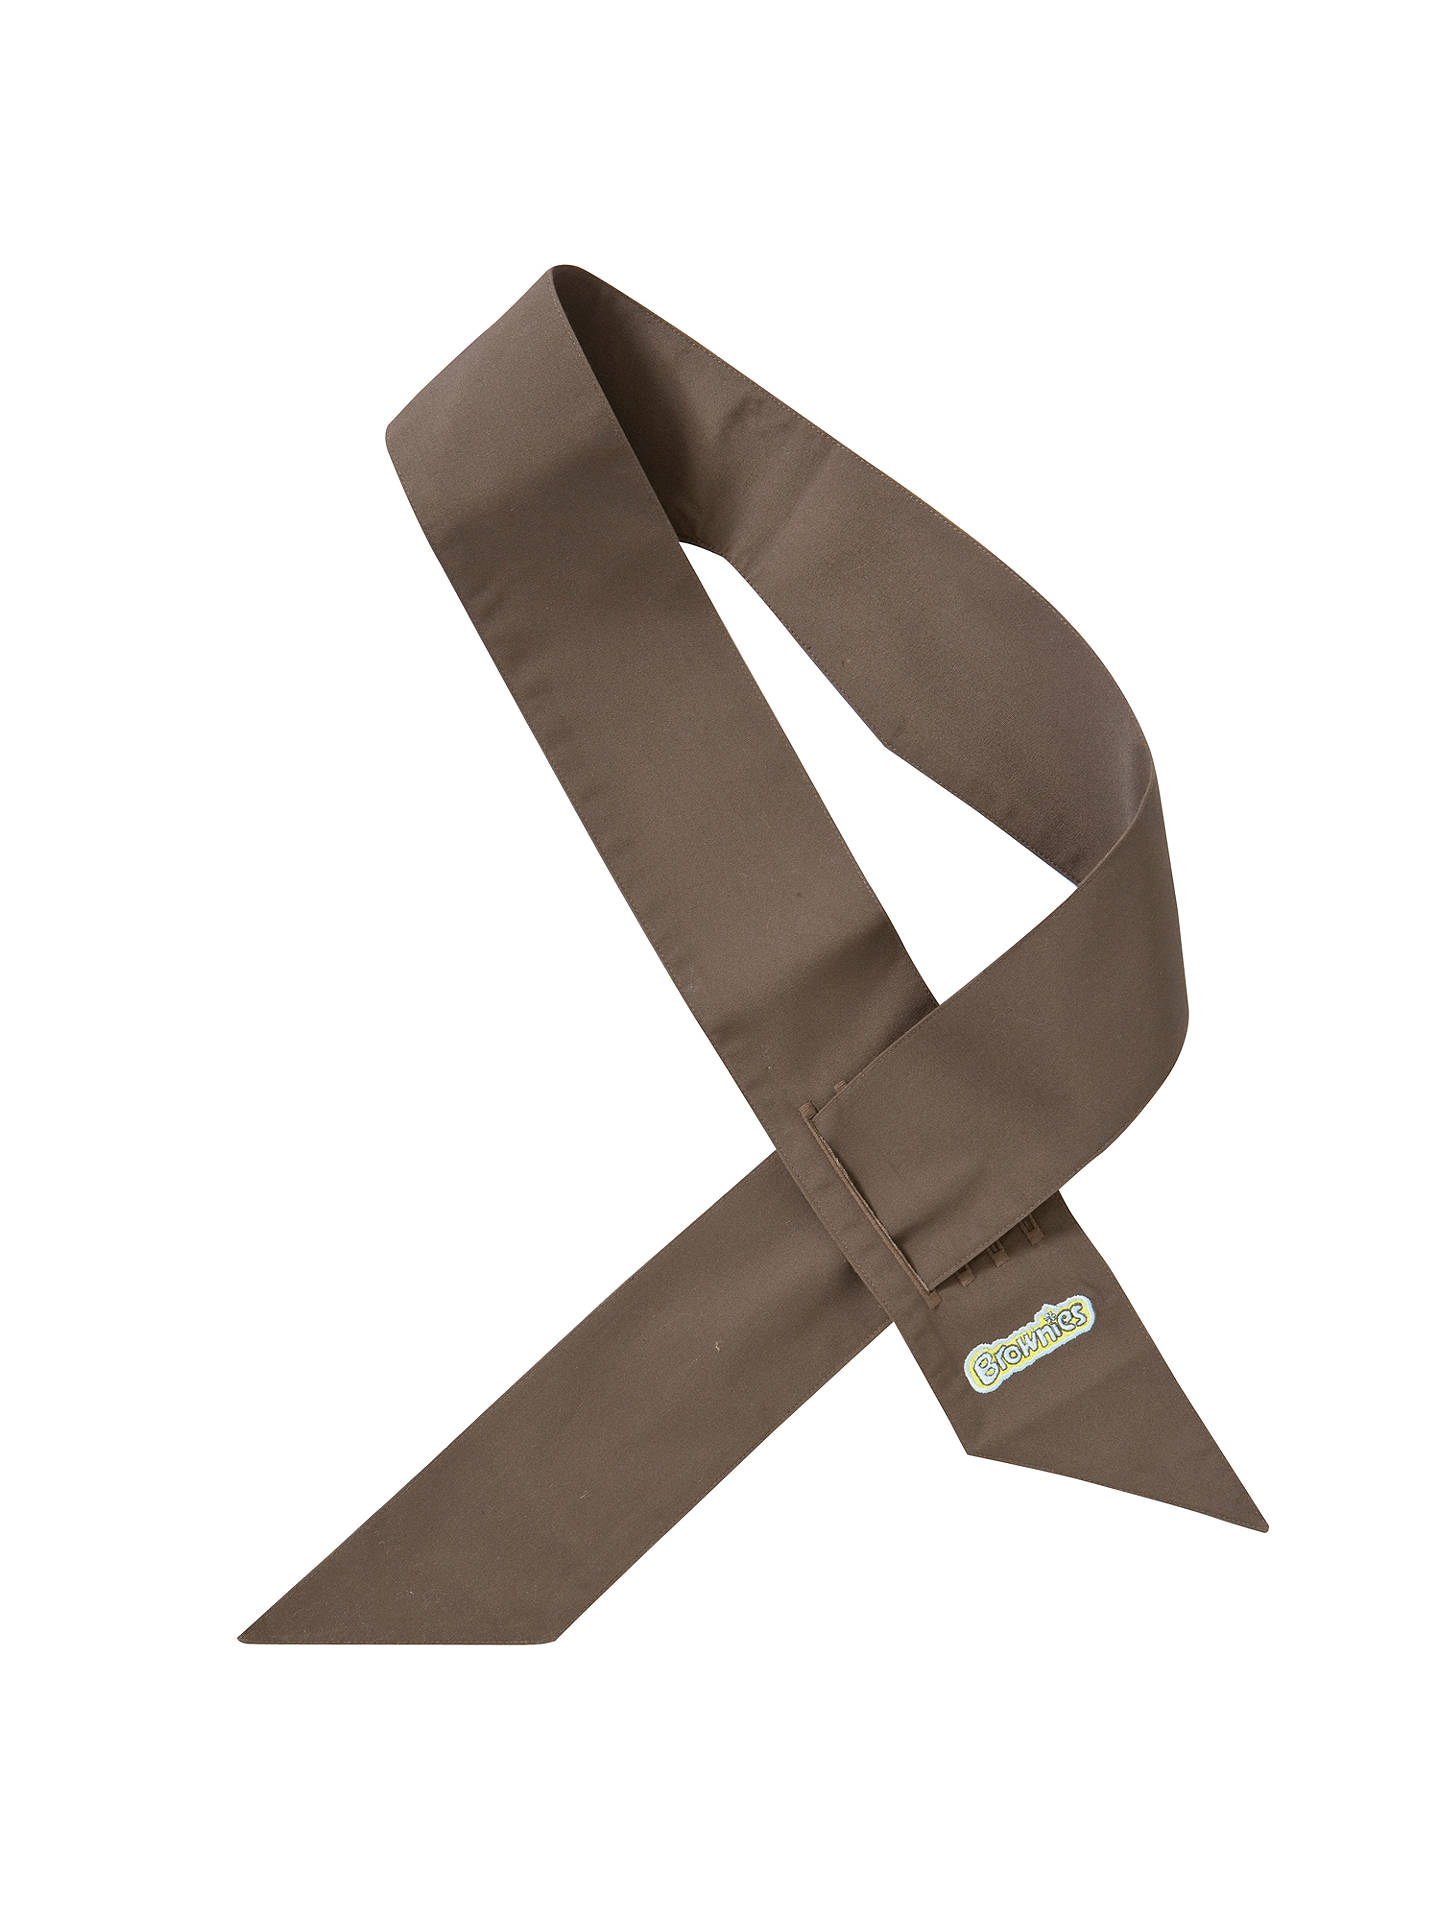 BuyBrownies Uniform Sash, Brown Online at johnlewis.com